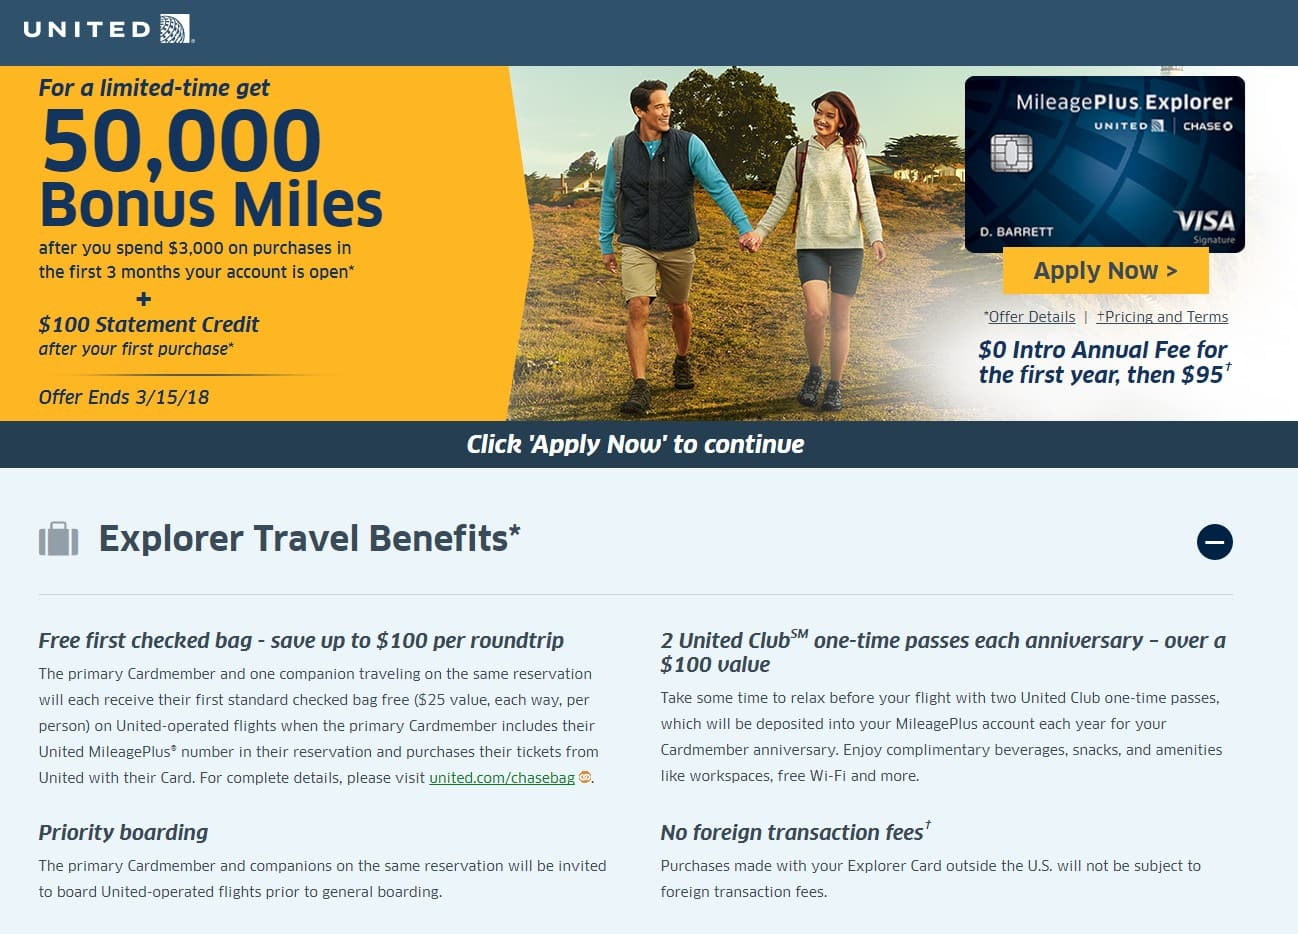 United Credit Card Customer Service Chase United Mileage Plus Explorer Credit Card Promotion 50k